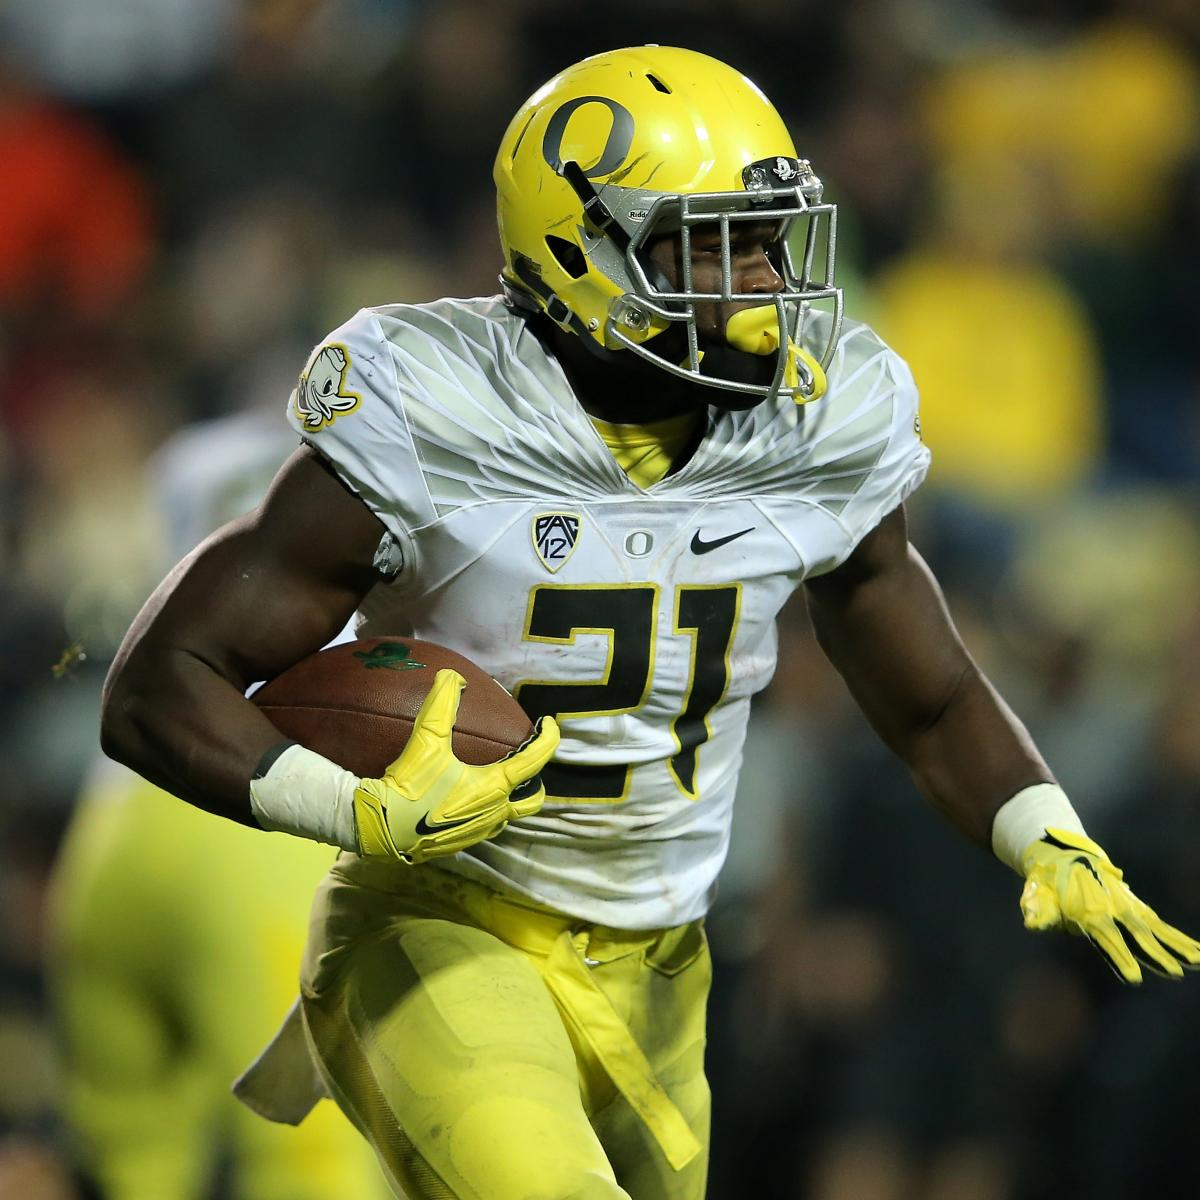 8c57ccd8a3e7 Top 10 Nike Uniforms in College Football